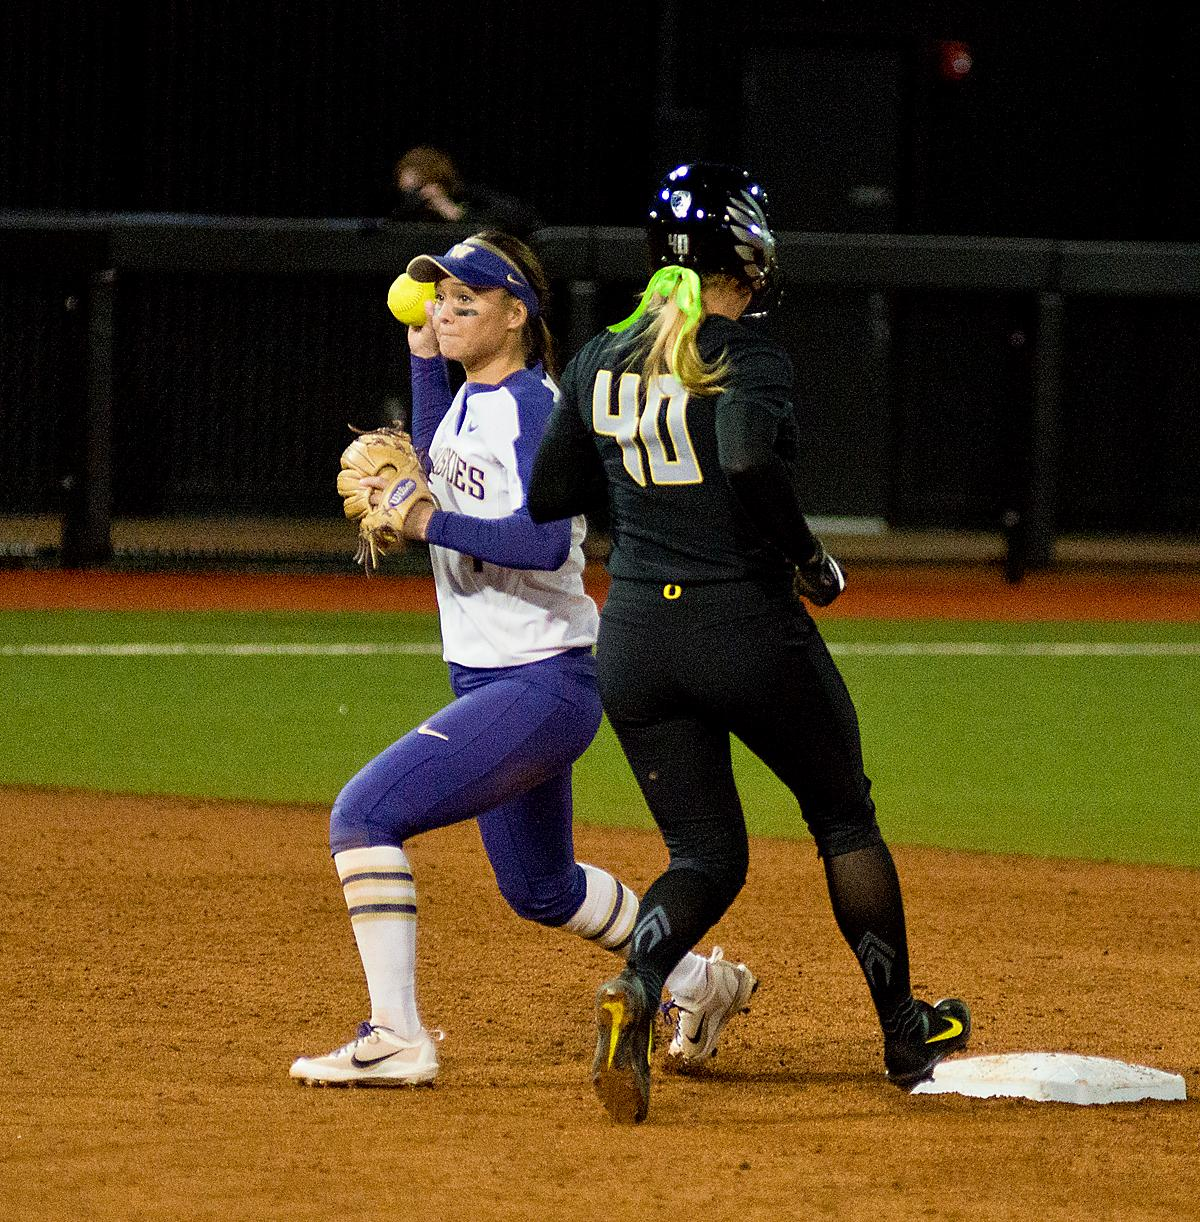 Ducks Miranda Elish (#40) is out at second and Huskies shortstop Ali Aguilar (#1) attempts to turn a double play. In Game Two of a three-game series, the University of Oregon Ducks softball team defeated the University of Washington Huskies 4-1 Friday night in Jane Sanders Stadium. Danica Mercado (#2), Alexis Mack (#10) and Mia Camuso (#7) all scored in the win, Mack twice. The Ducks play the Huskies for the tie breaker on Saturday with the first pitch at noon. Photo by Dan Morrison, Oregon News Lab